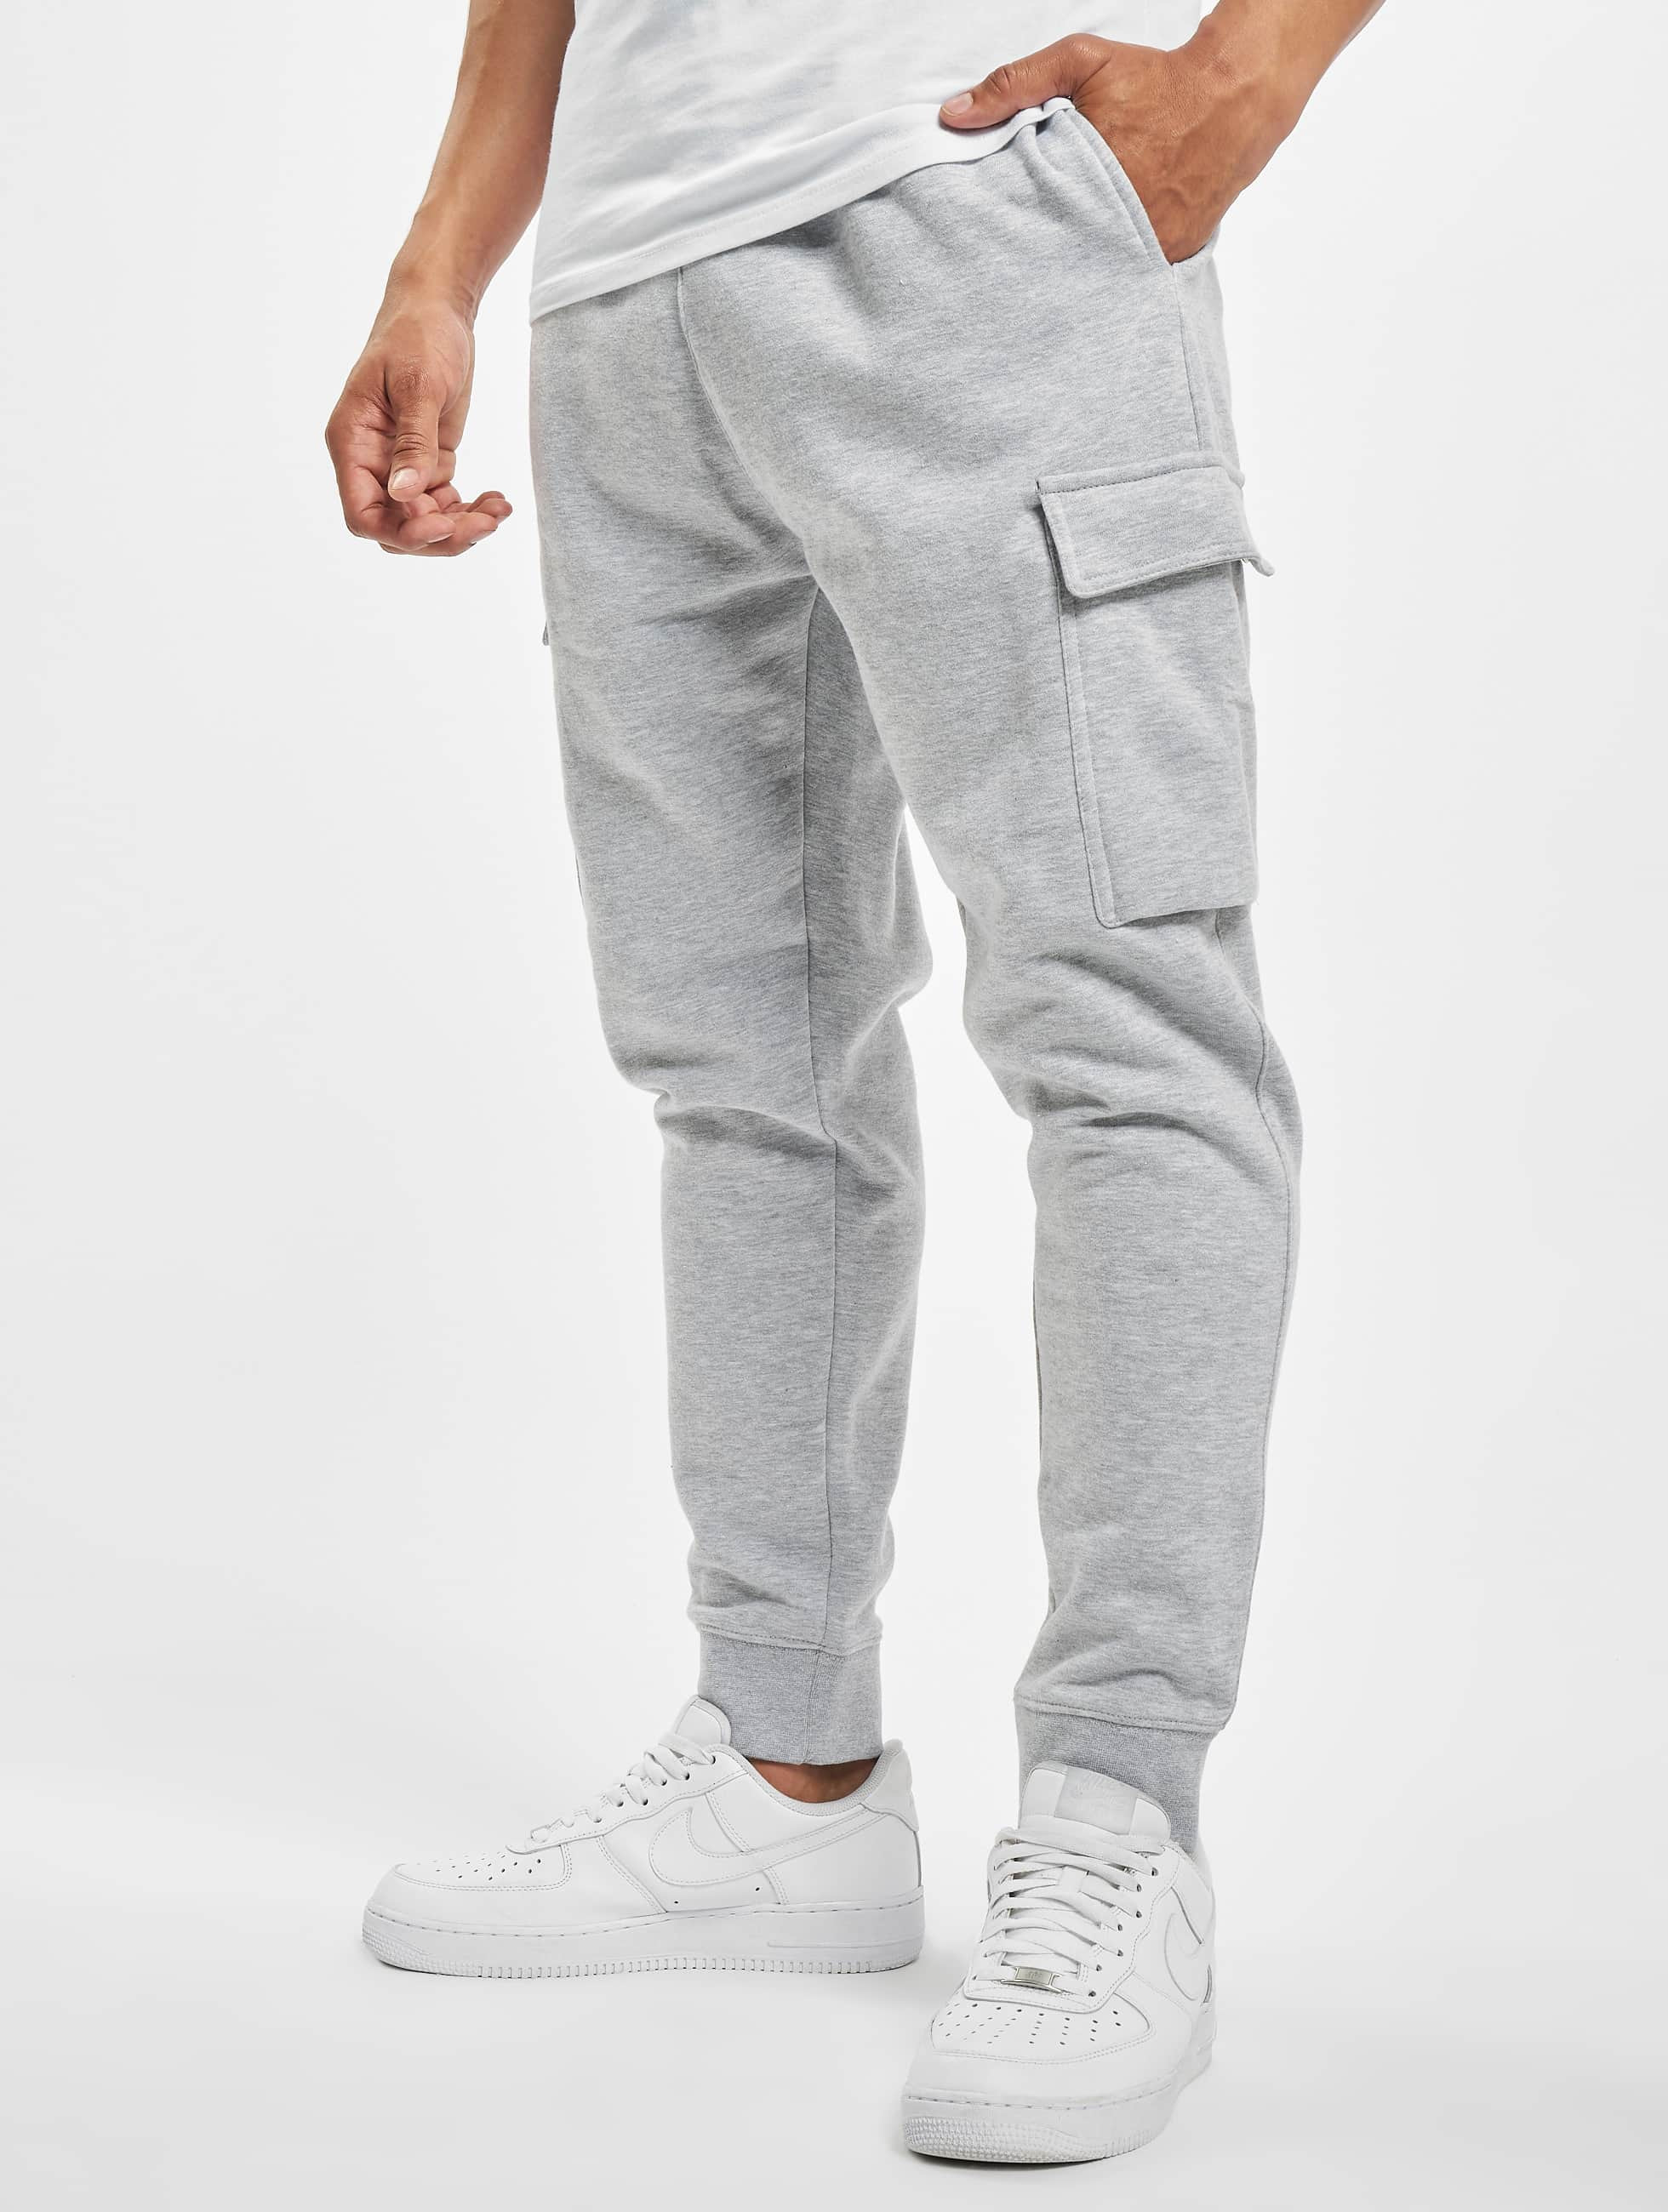 DEF / Sweat Pant Denni in grey L